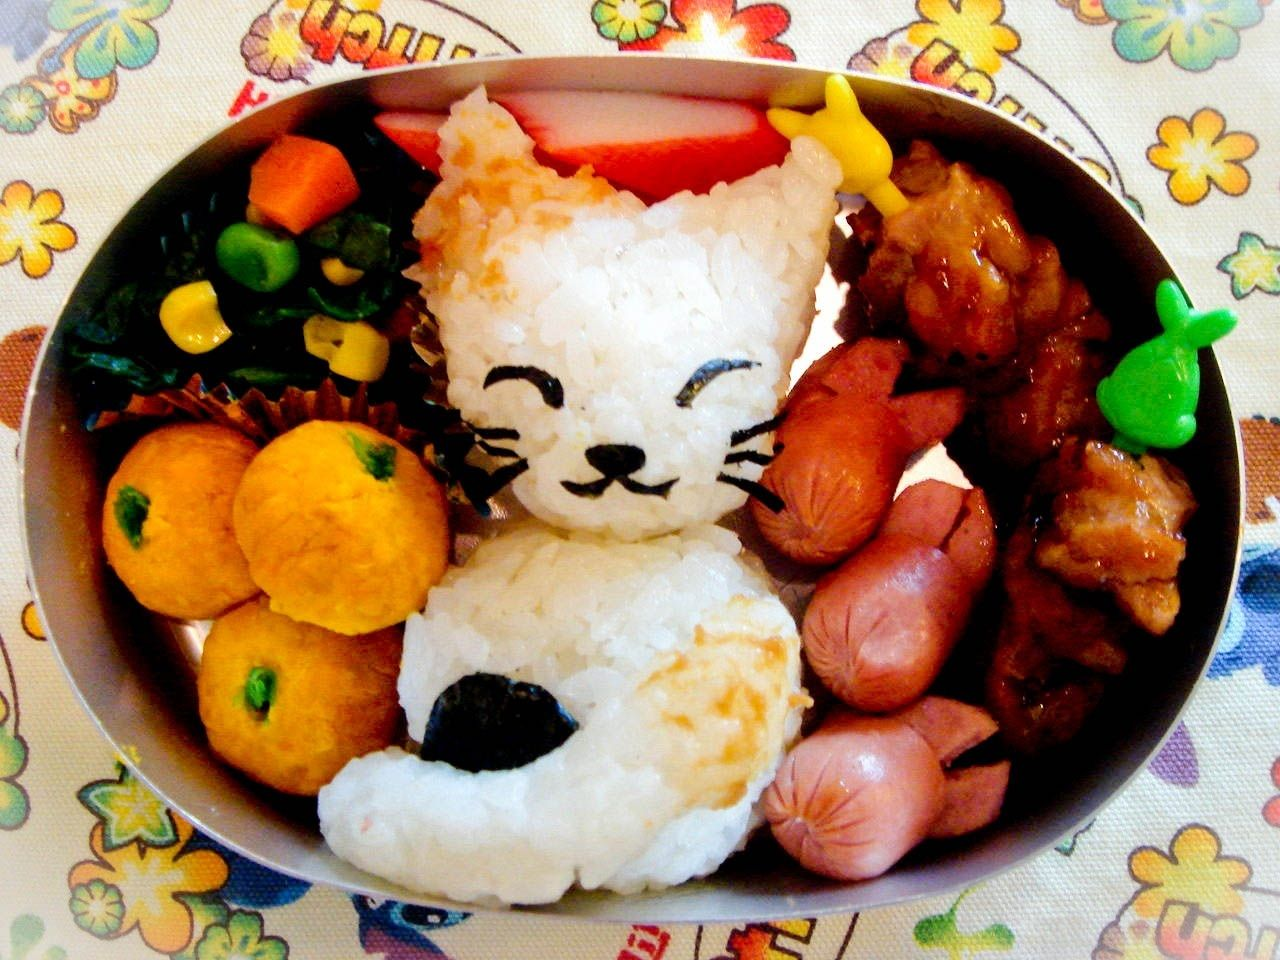 Cute japanese food pictures art kawaii food art for Cuisine japonaise